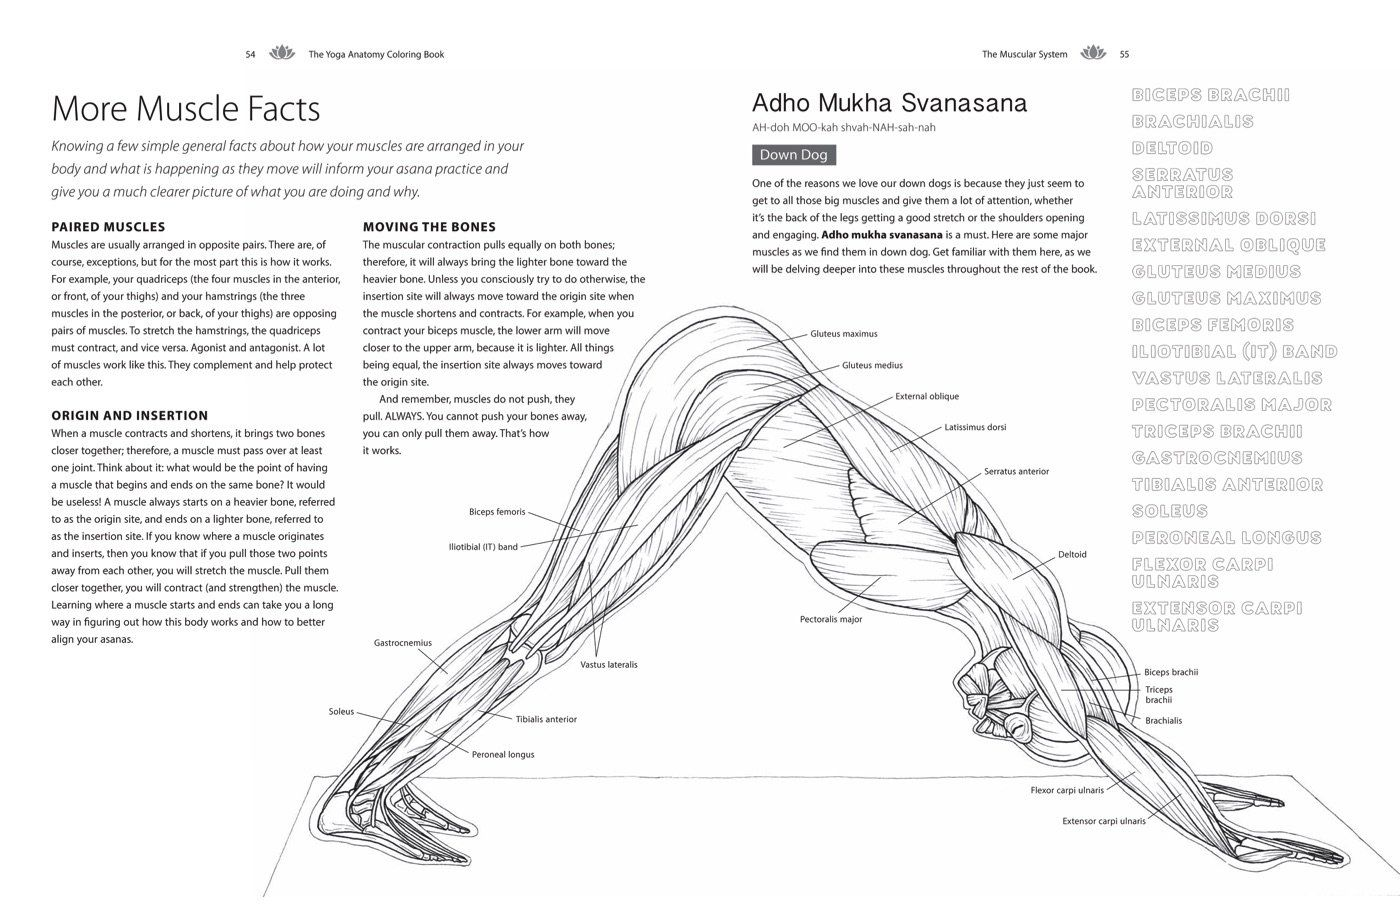 The Yoga Anatomy Coloring Book A Visual Guide To Form Function And Movement Kelly Solloway Samant Anatomy Coloring Book Coloring Books Words Coloring Book